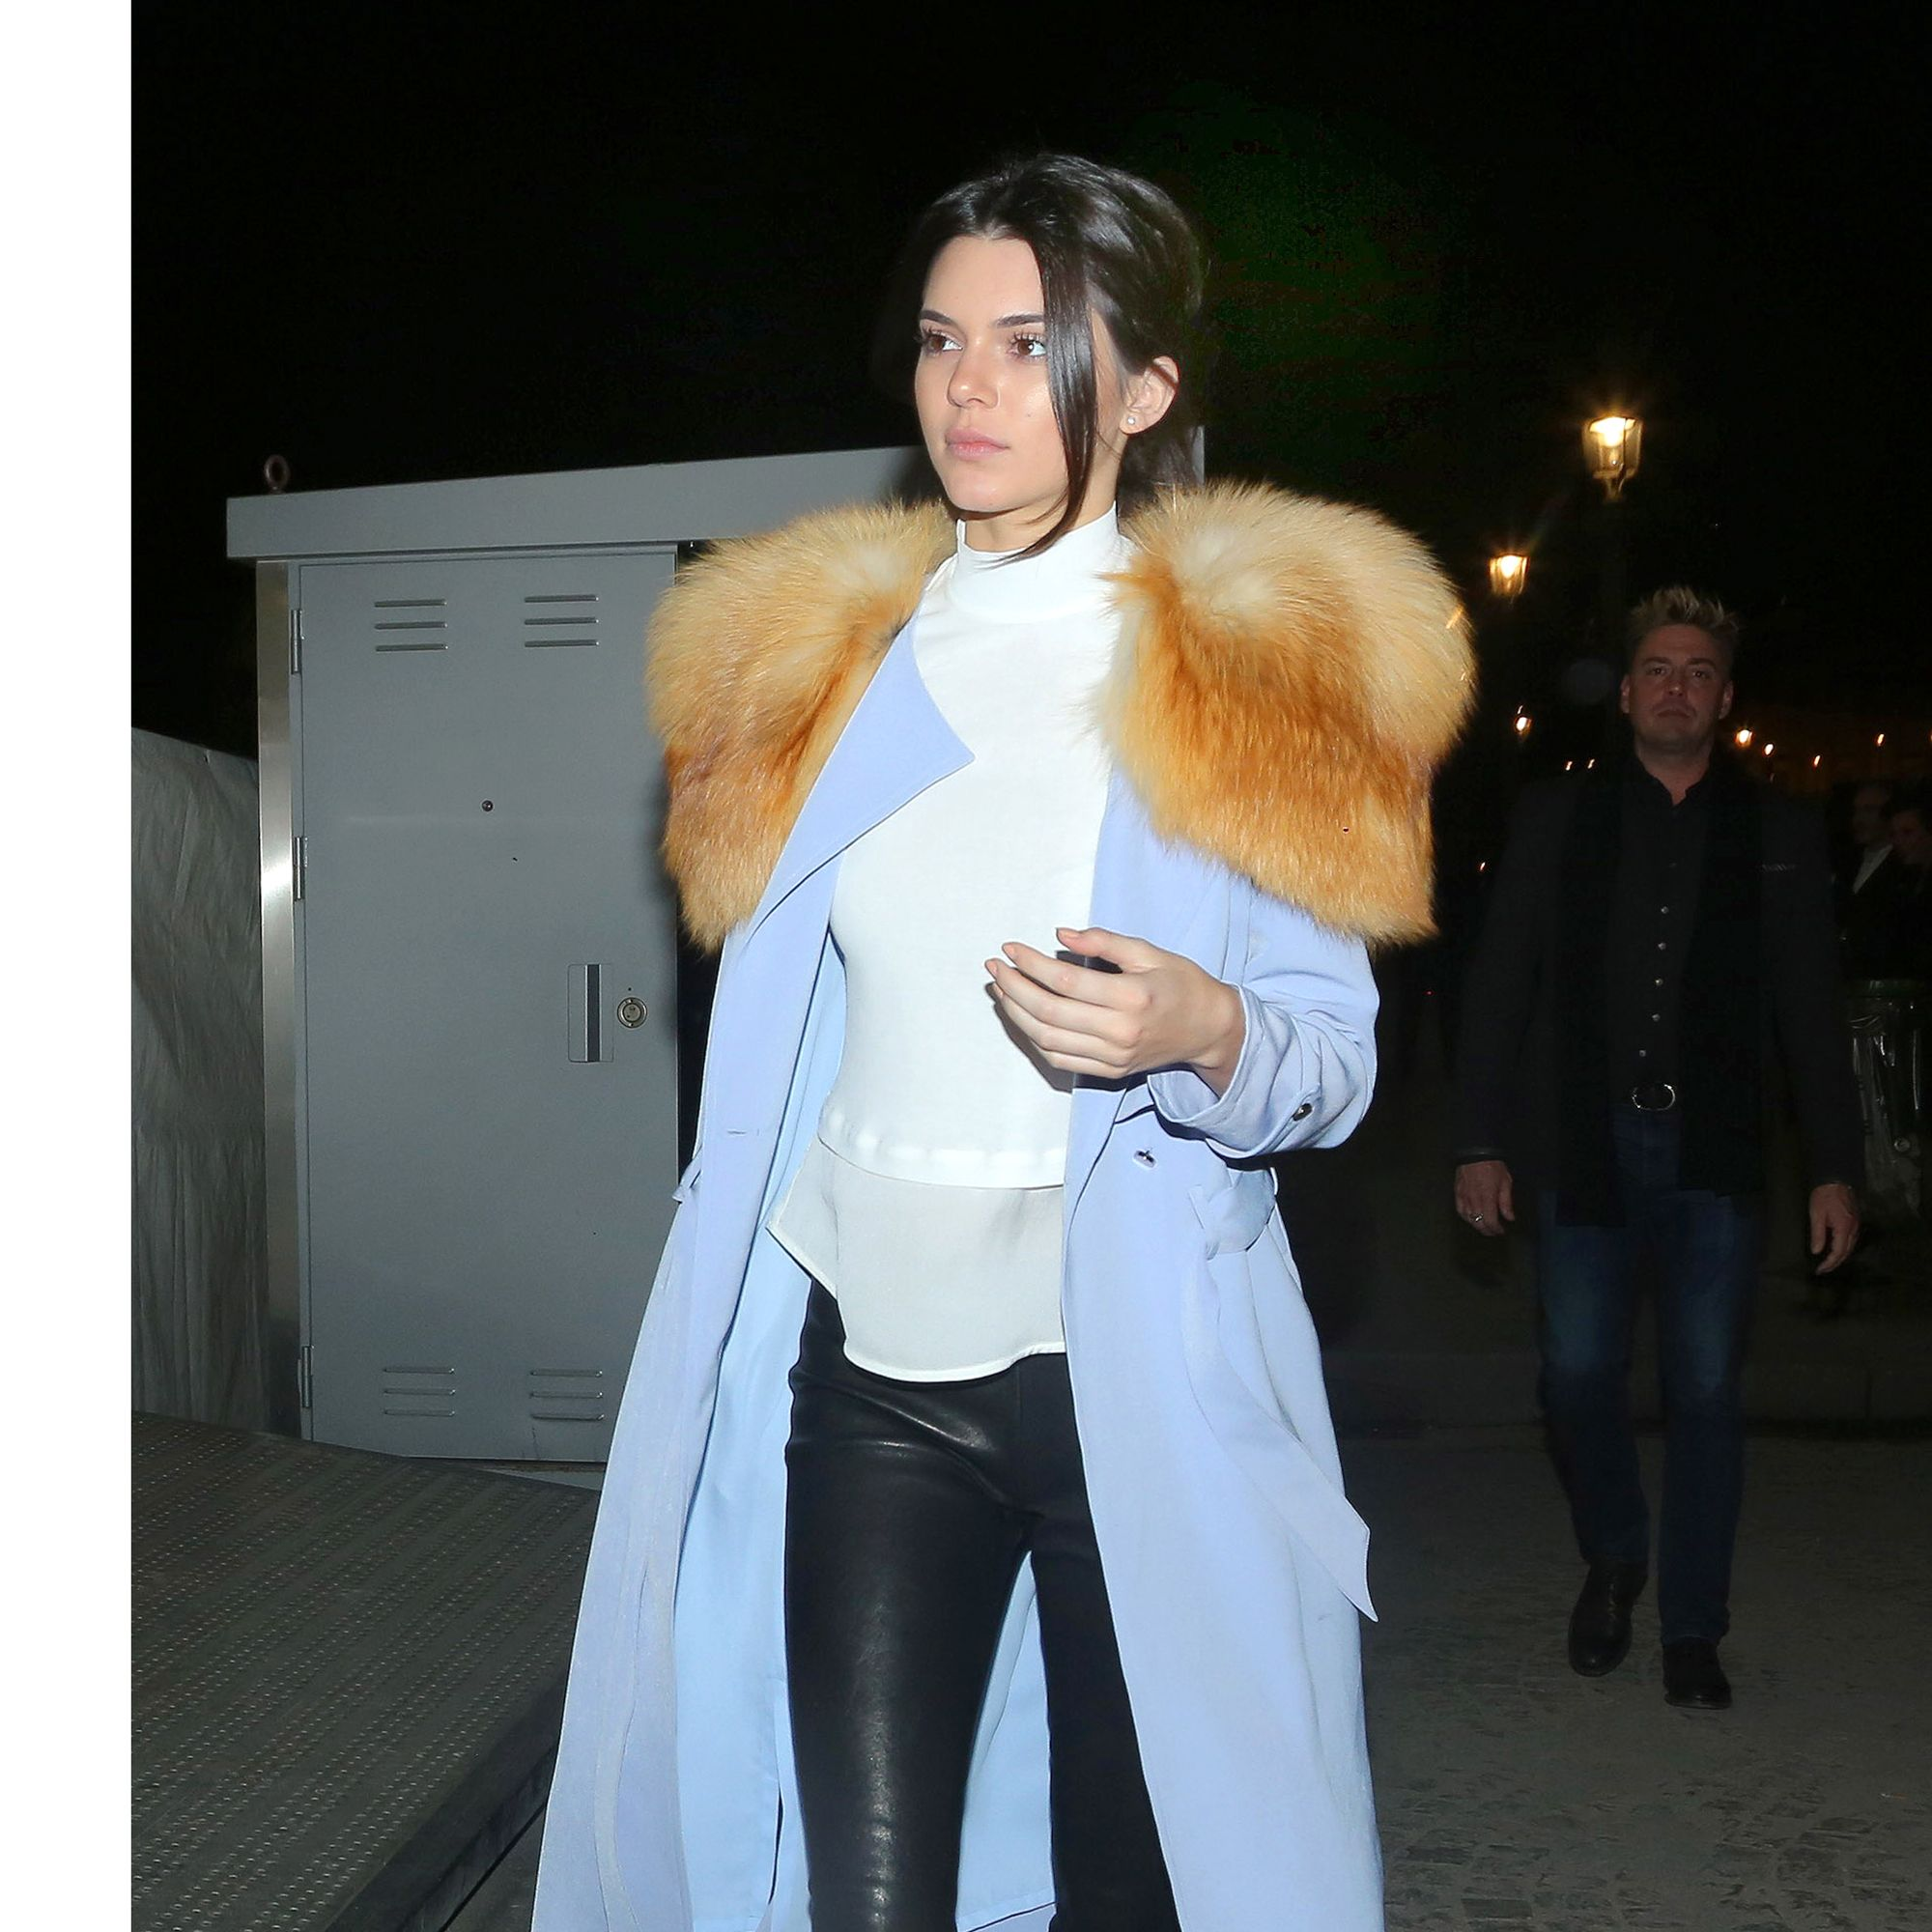 Kendall Jenner shows off her fashion style on a cold night in Paris at the Ferris Wheel with some fun and a flowing light blue jacket. The young model is in town for fashion week and enjoyed some downtime with her momager, Kris Jenner and some friends for a night on the Ferris Wheel overlooking Paris and the Eiffel tower.&#xA&#x3B;&lt&#x3B;P&gt&#x3B;&#xA&#x3B;Pictured: Kendall Jenner&#xA&#x3B;&lt&#x3B;B&gt&#x3B;Ref: SPL935713  250115  &lt&#x3B;/B&gt&#x3B;&lt&#x3B;BR/&gt&#x3B;&#xA&#x3B;Picture by: Brian Prahl / Splash News&lt&#x3B;BR/&gt&#x3B;&#xA&#x3B;&lt&#x3B;/P&gt&#x3B;&lt&#x3B;P&gt&#x3B;&#xA&#x3B;&lt&#x3B;B&gt&#x3B;Splash News and Pictures&lt&#x3B;/B&gt&#x3B;&lt&#x3B;BR/&gt&#x3B;&#xA&#x3B;Los Angeles:310-821-2666&lt&#x3B;BR/&gt&#x3B;&#xA&#x3B;New York:212-619-2666&lt&#x3B;BR/&gt&#x3B;&#xA&#x3B;London:870-934-2666&lt&#x3B;BR/&gt&#x3B;&#xA&#x3B;photodesk@splashnews.com&lt&#x3B;BR/&gt&#x3B;&#xA&#x3B;&lt&#x3B;/P&gt&#x3B;